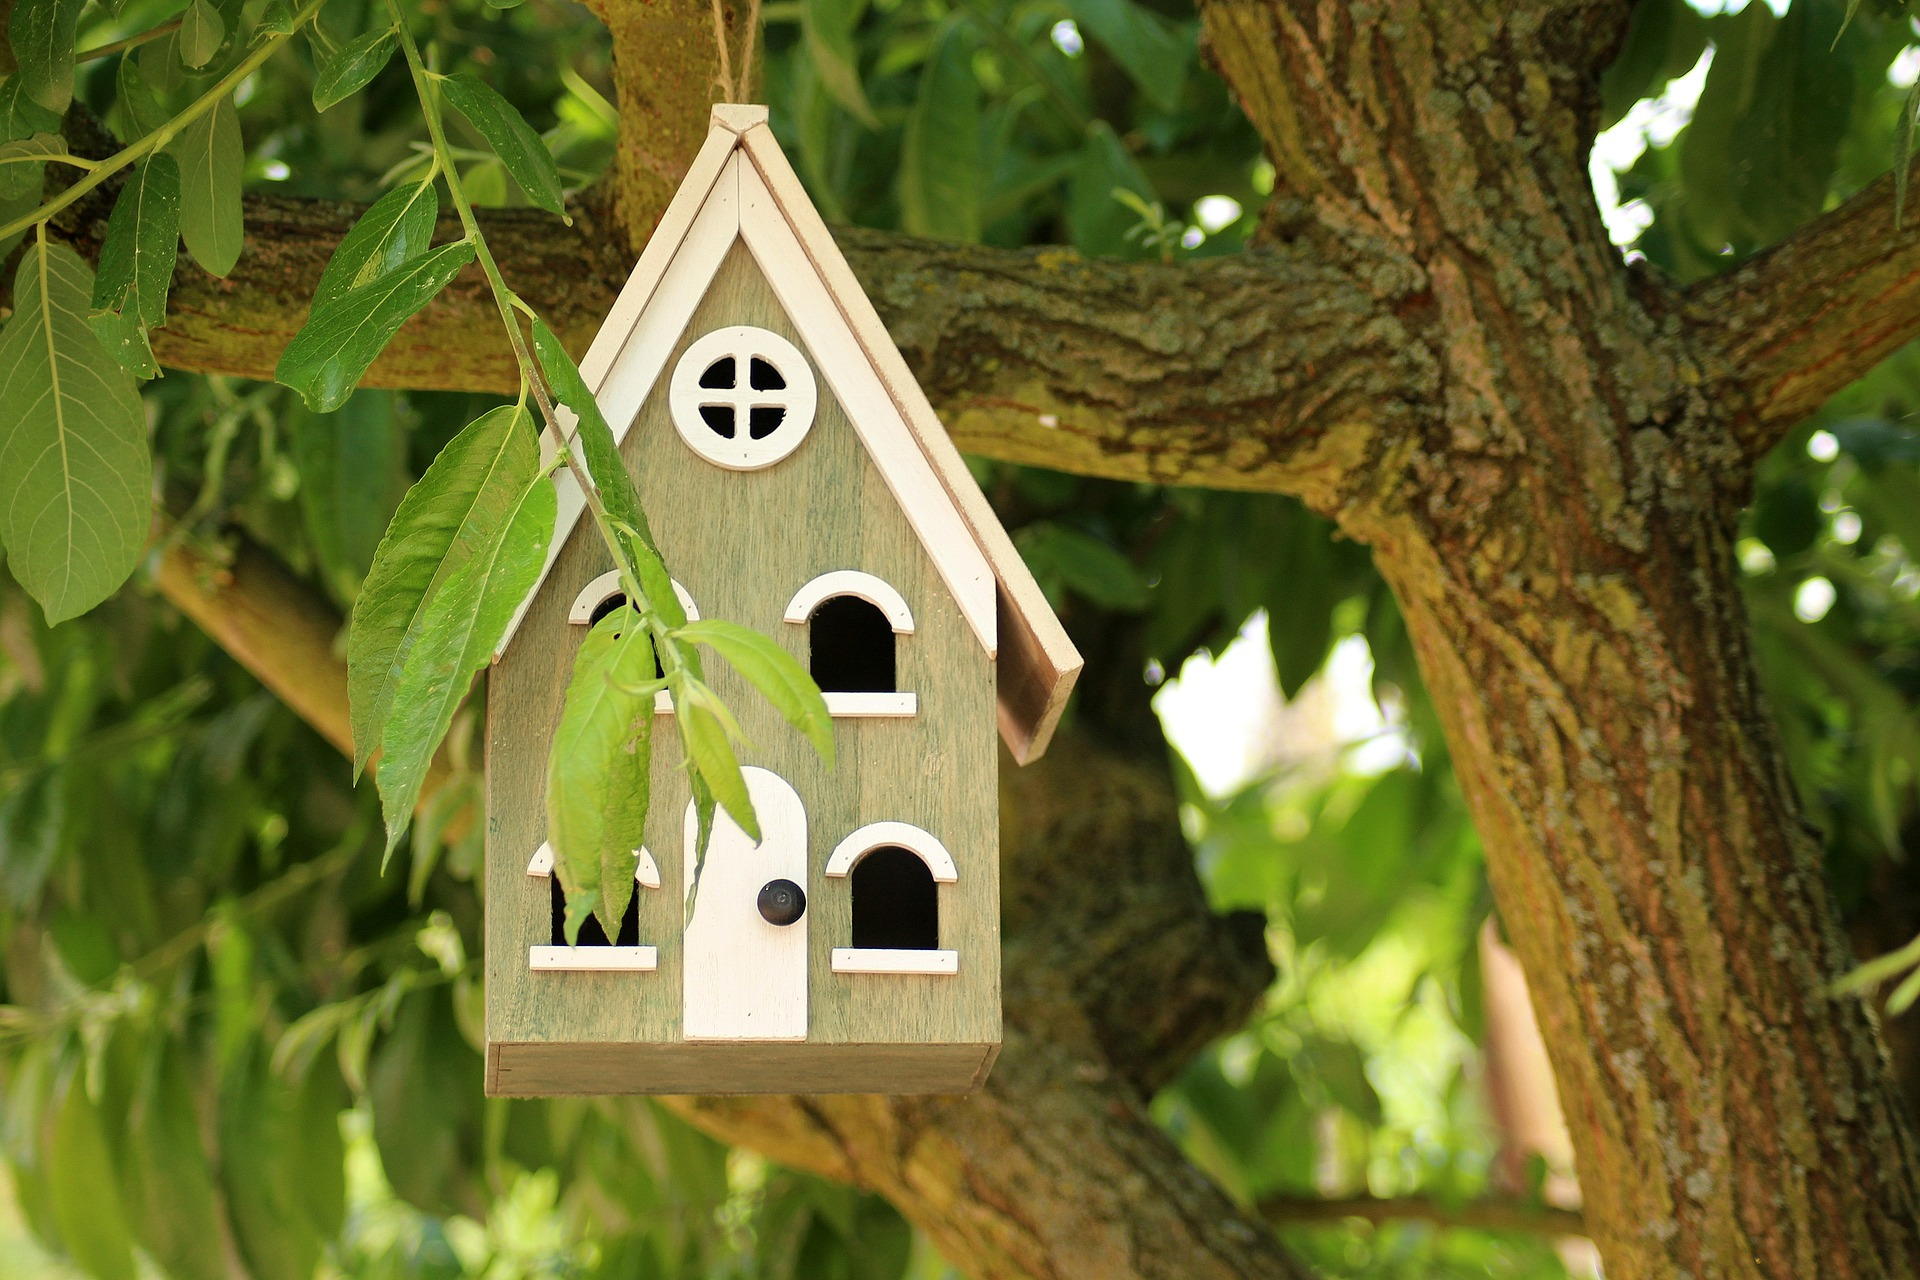 birdhouse, How to build a bird house yourself: building instructions for bird houses, Best Garden, Home And DIY Tips